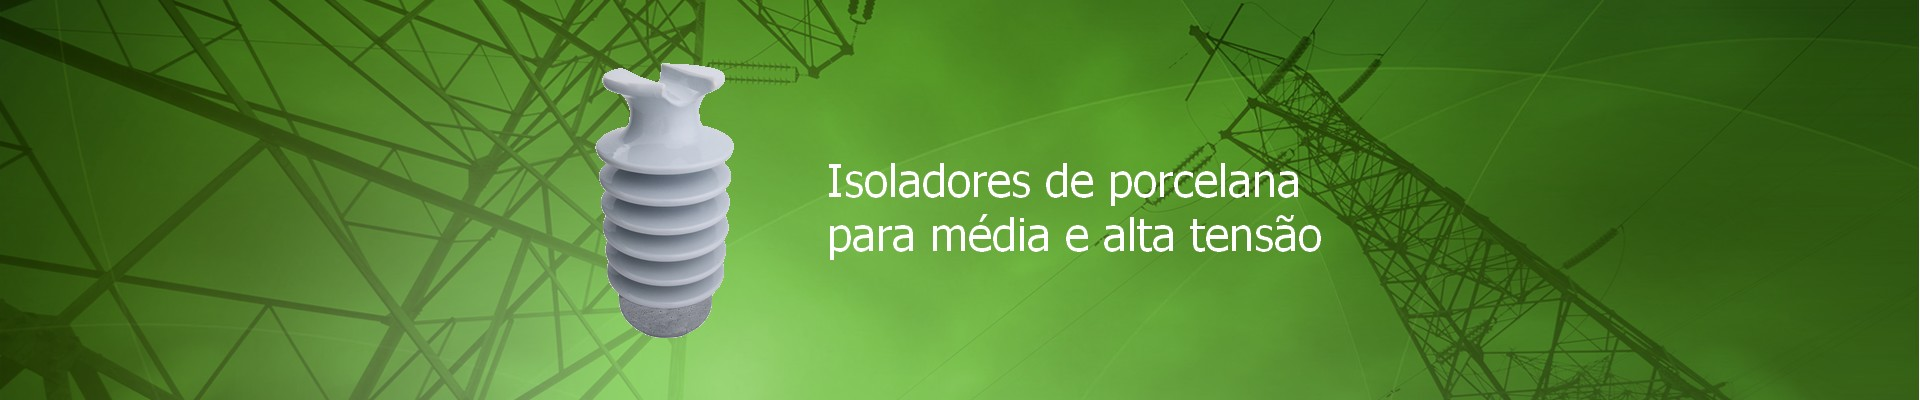 slide isoladores de porcelana